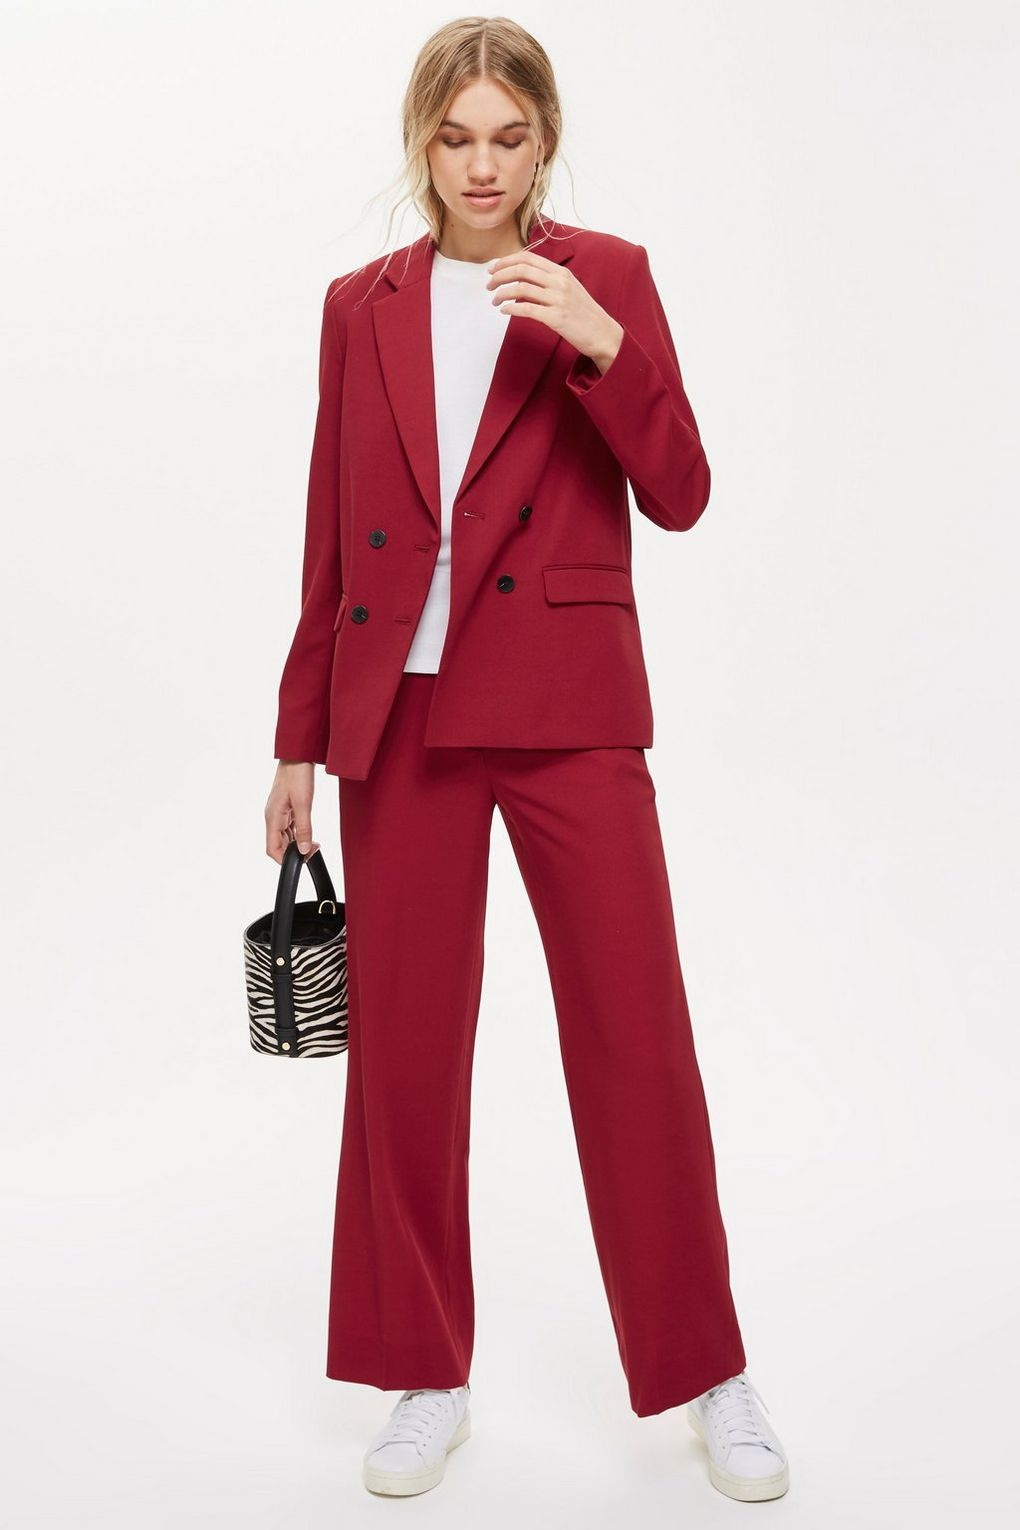 c01bc9b0230bf Slouch Burgundy Suit - Workwear   Suits - Clothing - Topshop USA  affiliate